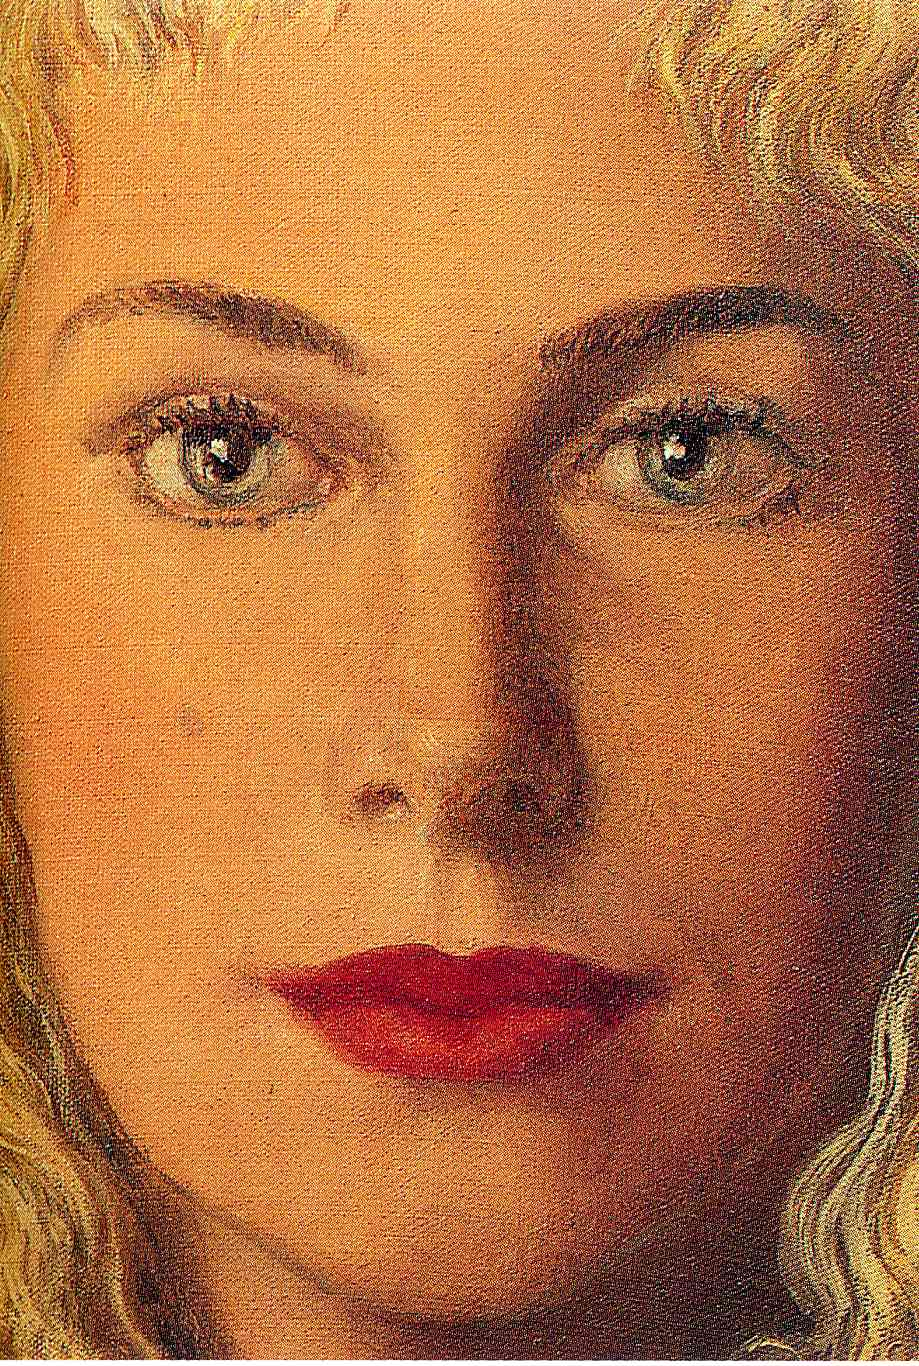 Anne-Marie Crowet, 1956 - Rene Magritte - WikiArt.org